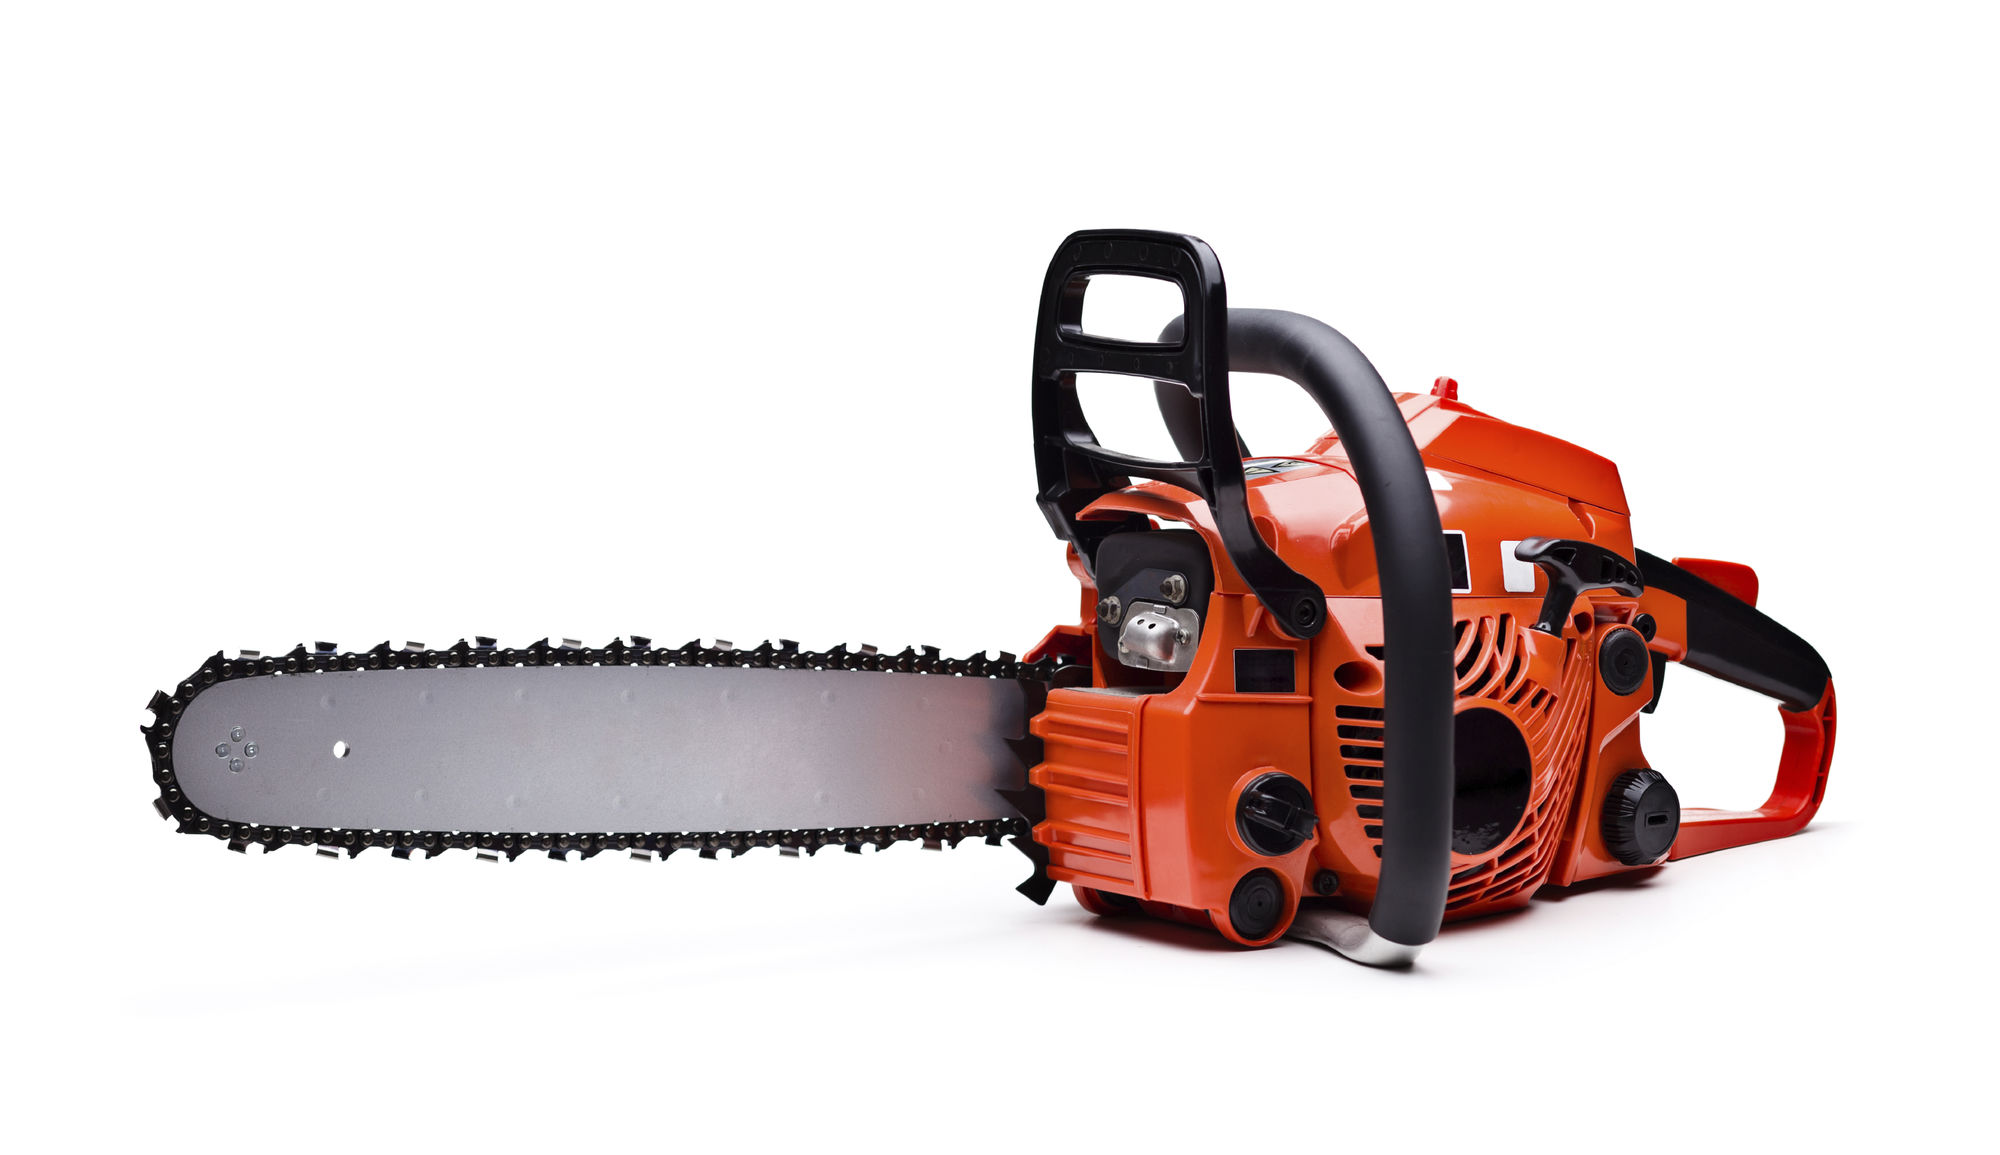 Chainsaw - Global Market Outlook (2017-2026)